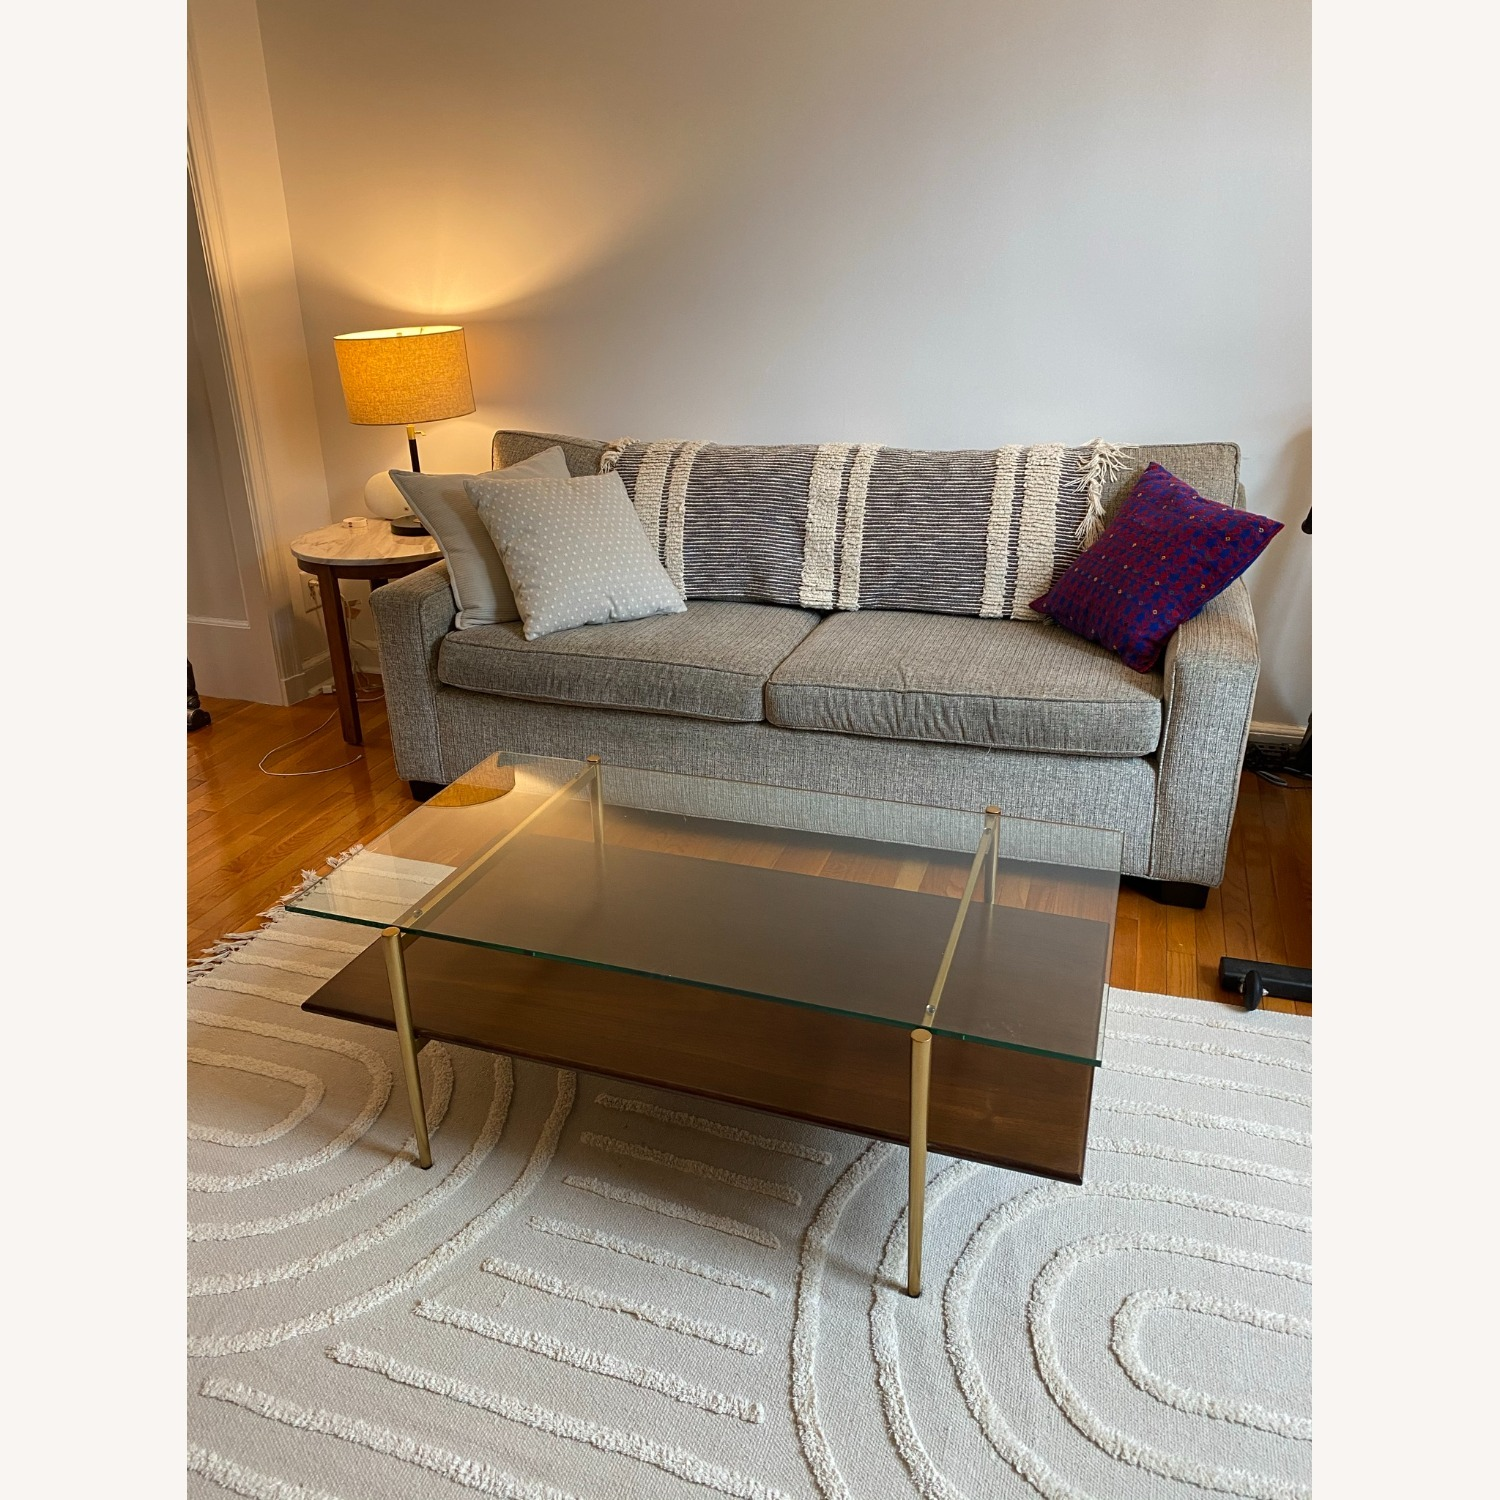 West Elm Coffee Table Glass and Wood - image-1